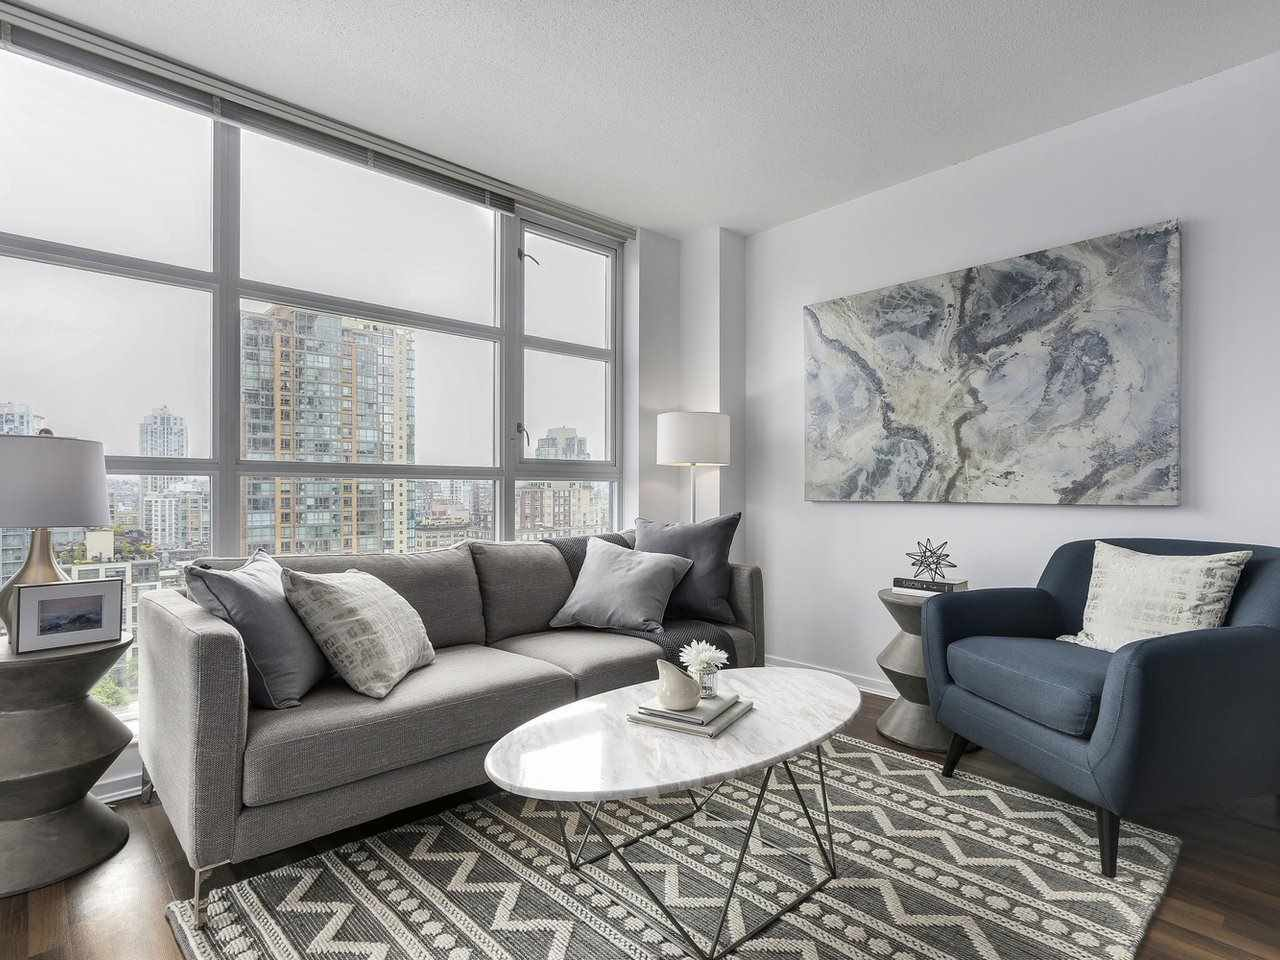 Main Photo: 1004 1155 SEYMOUR STREET in Vancouver: Downtown VW Condo for sale (Vancouver West)  : MLS®# R2169284